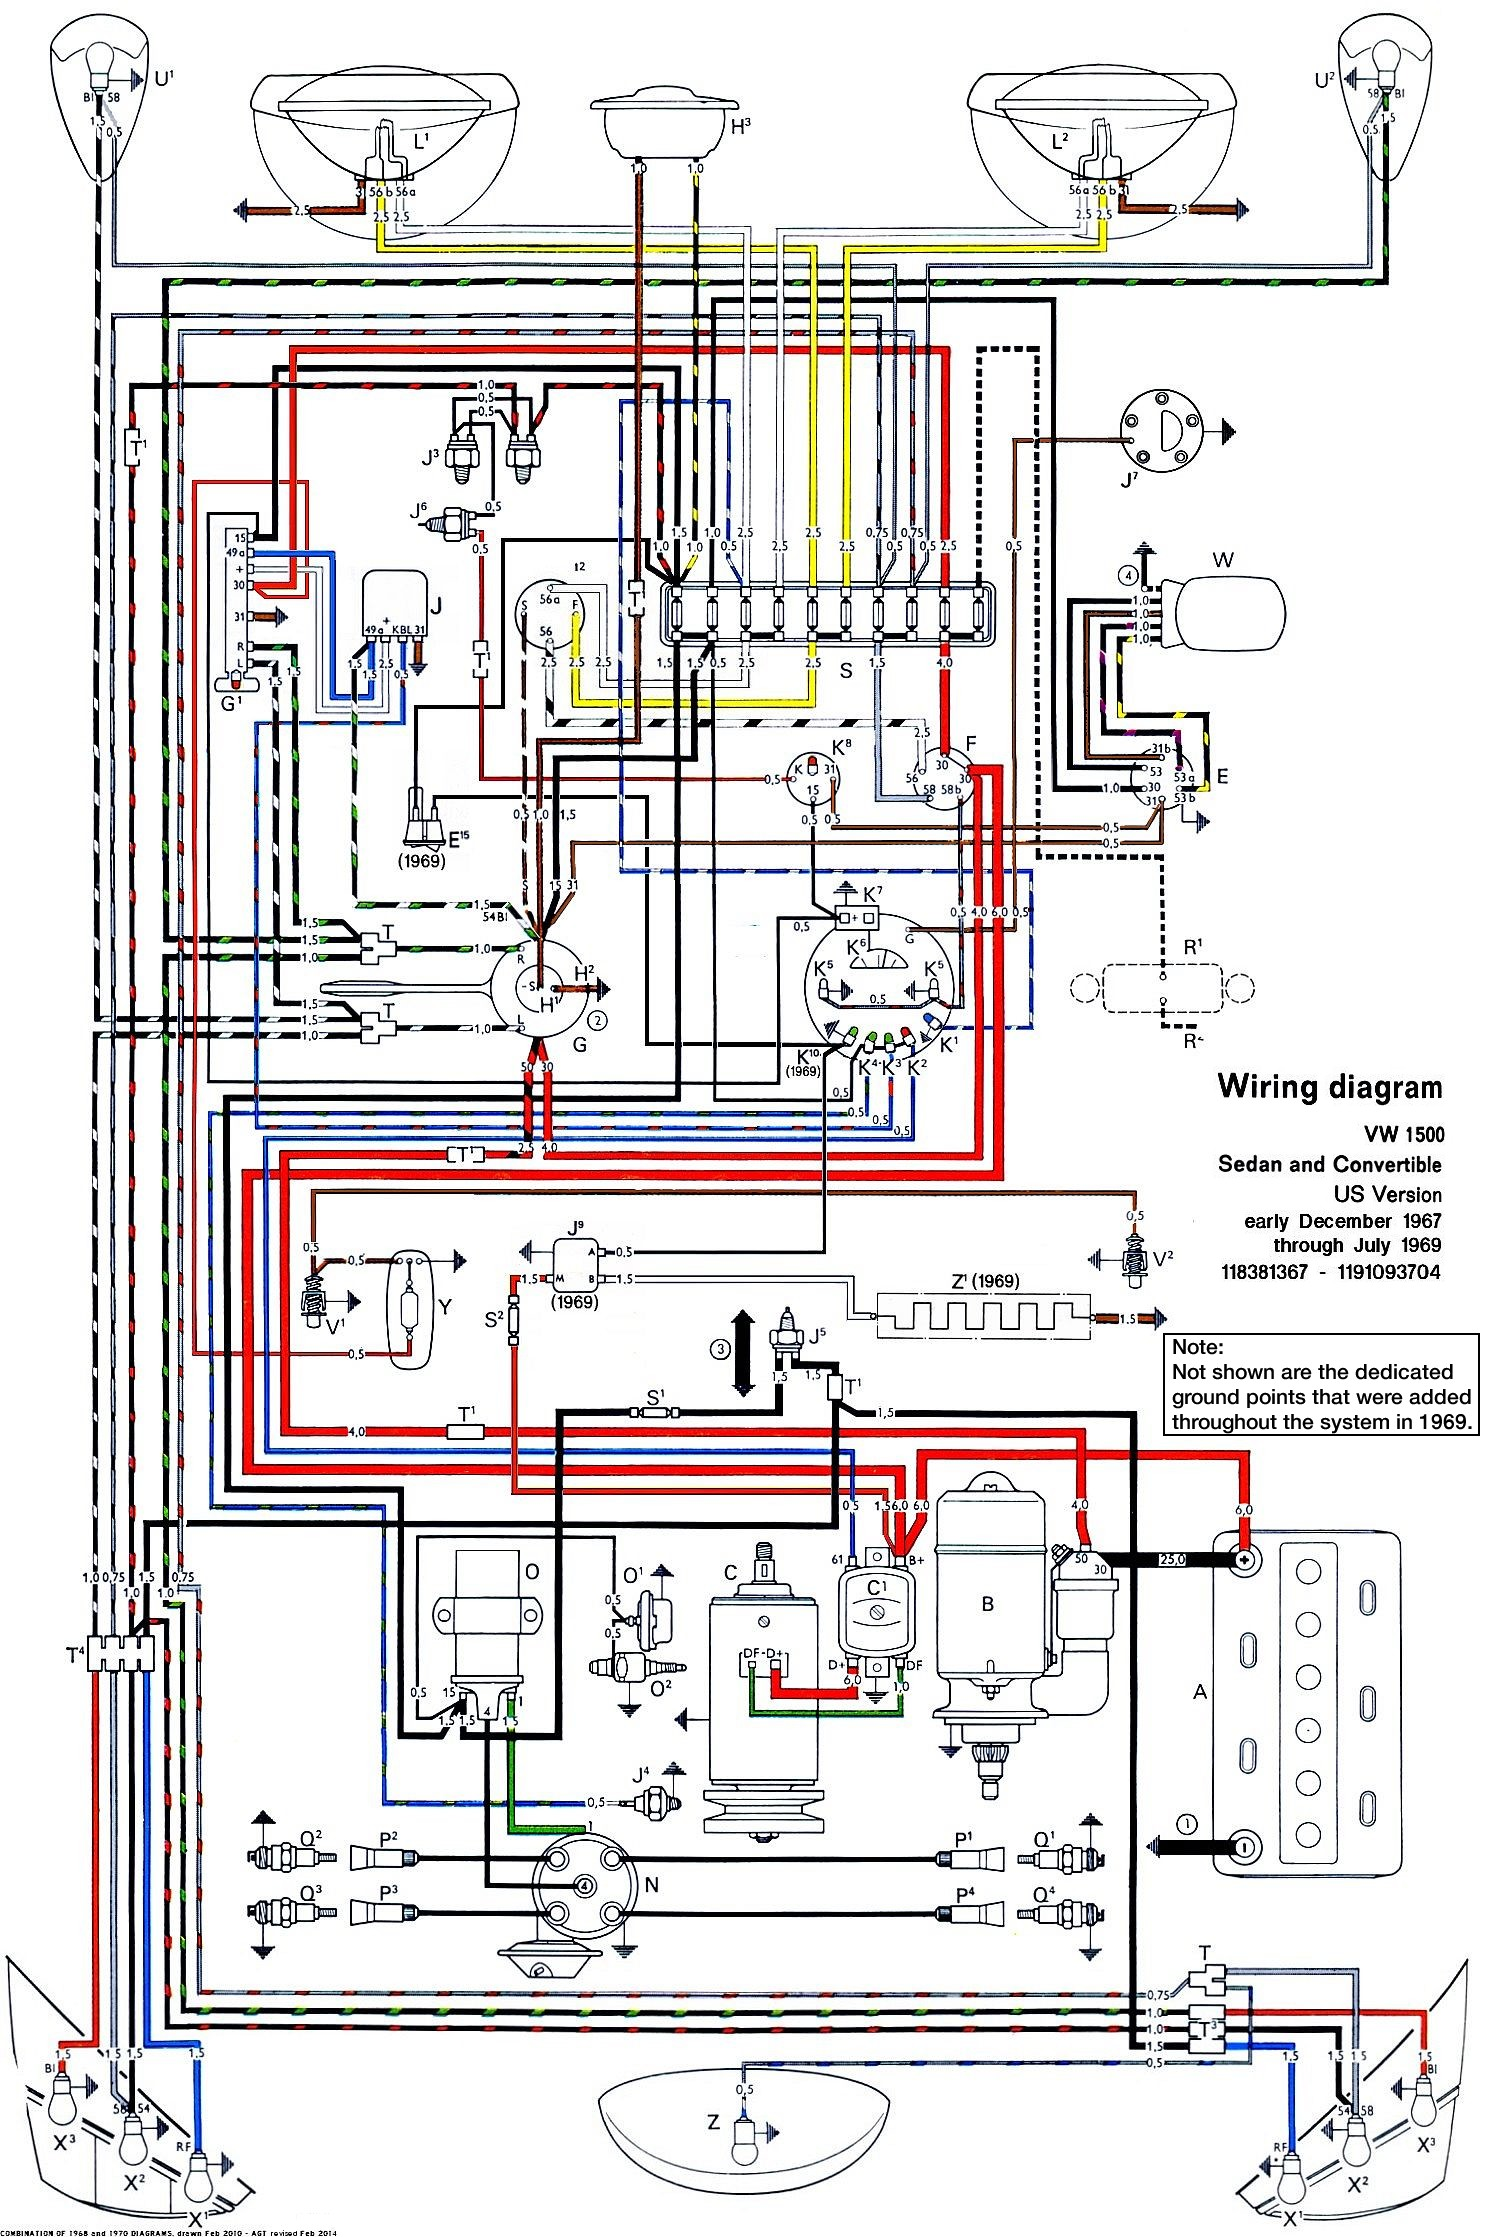 1963 Type 1 Wiring Diagram on 1973 lincoln continental wiring diagram